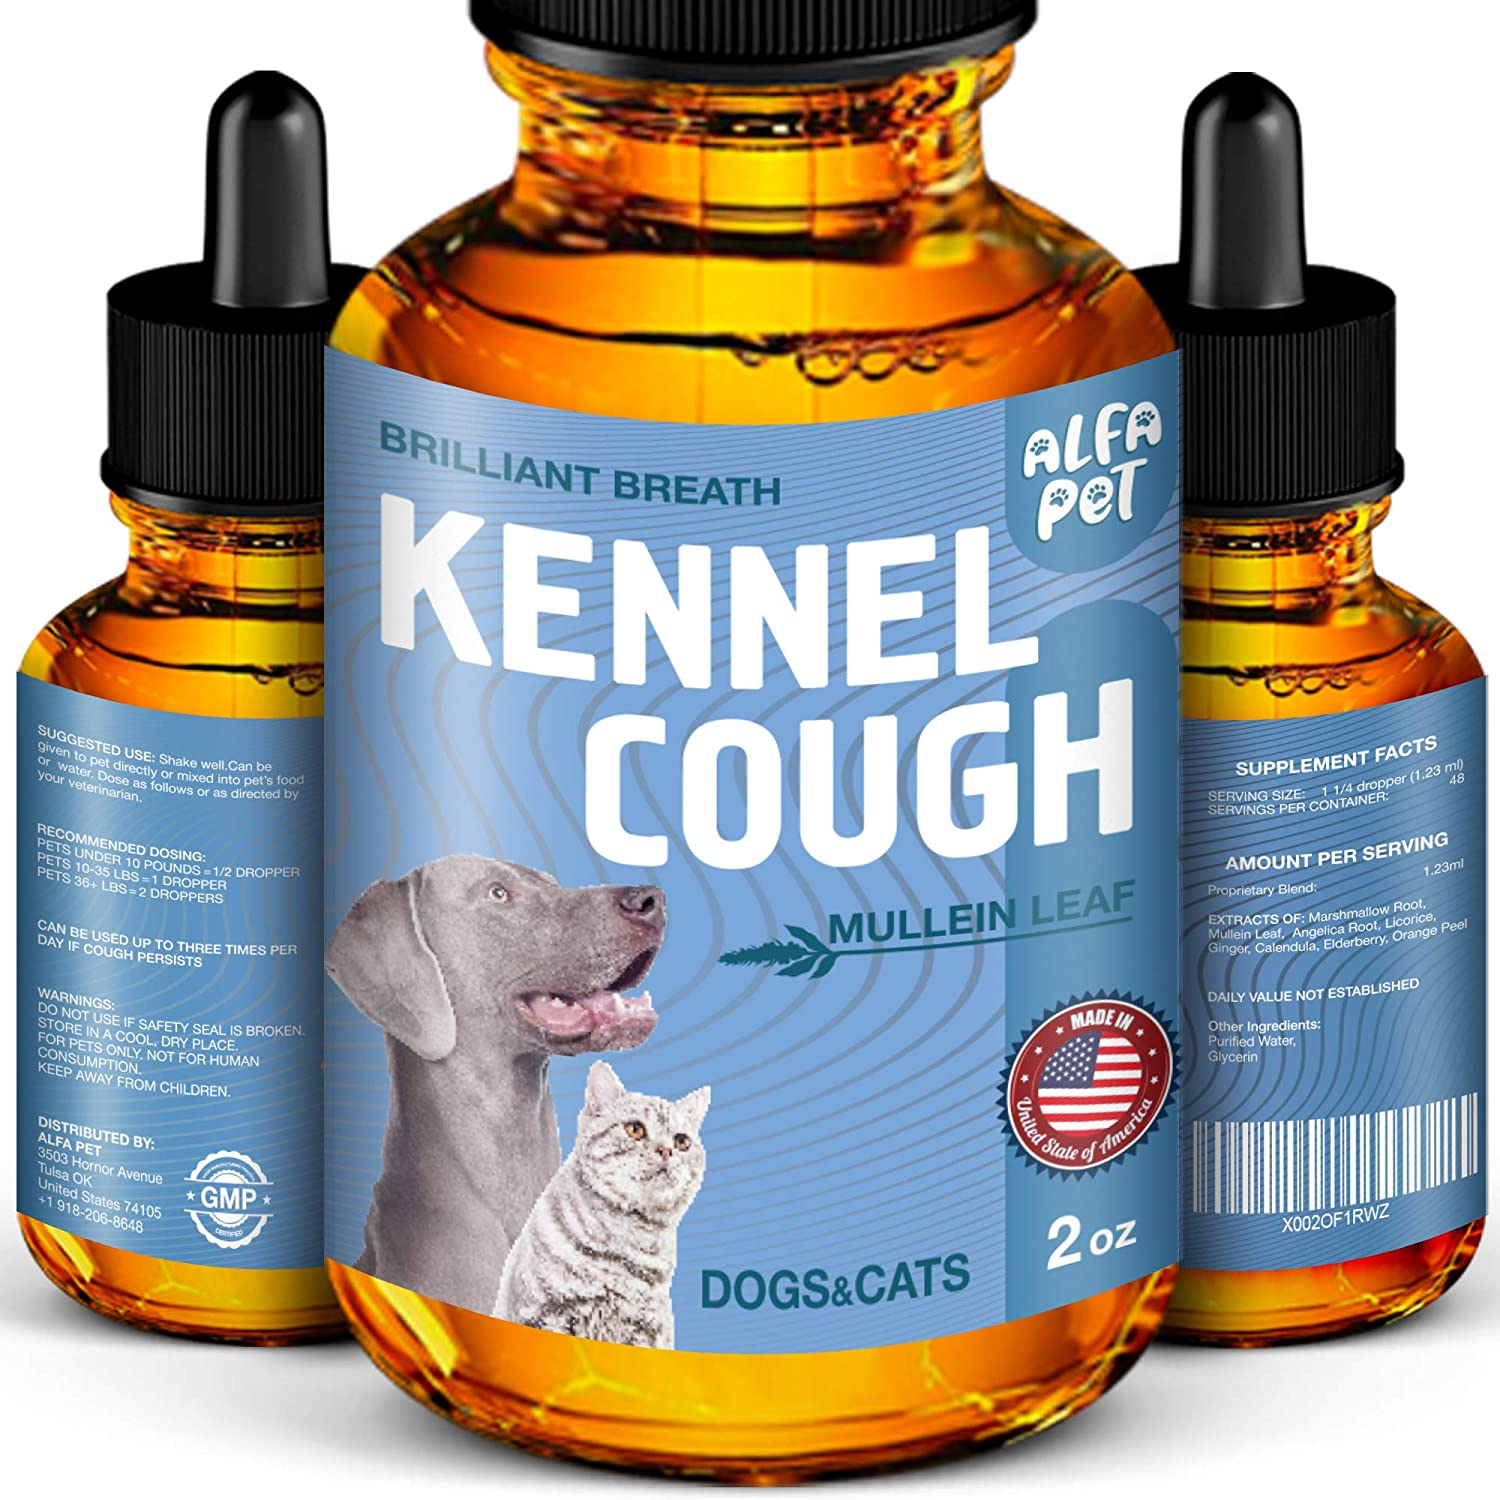 Dog Cough - Kennel Cough - Dog Allergy Relief - Supplements For Dogs & Cats Health - Allergy Relief Immune Supplement for Dogs - for Dry, Wet & Barkly Pet Cough - Suitable For All Sizes